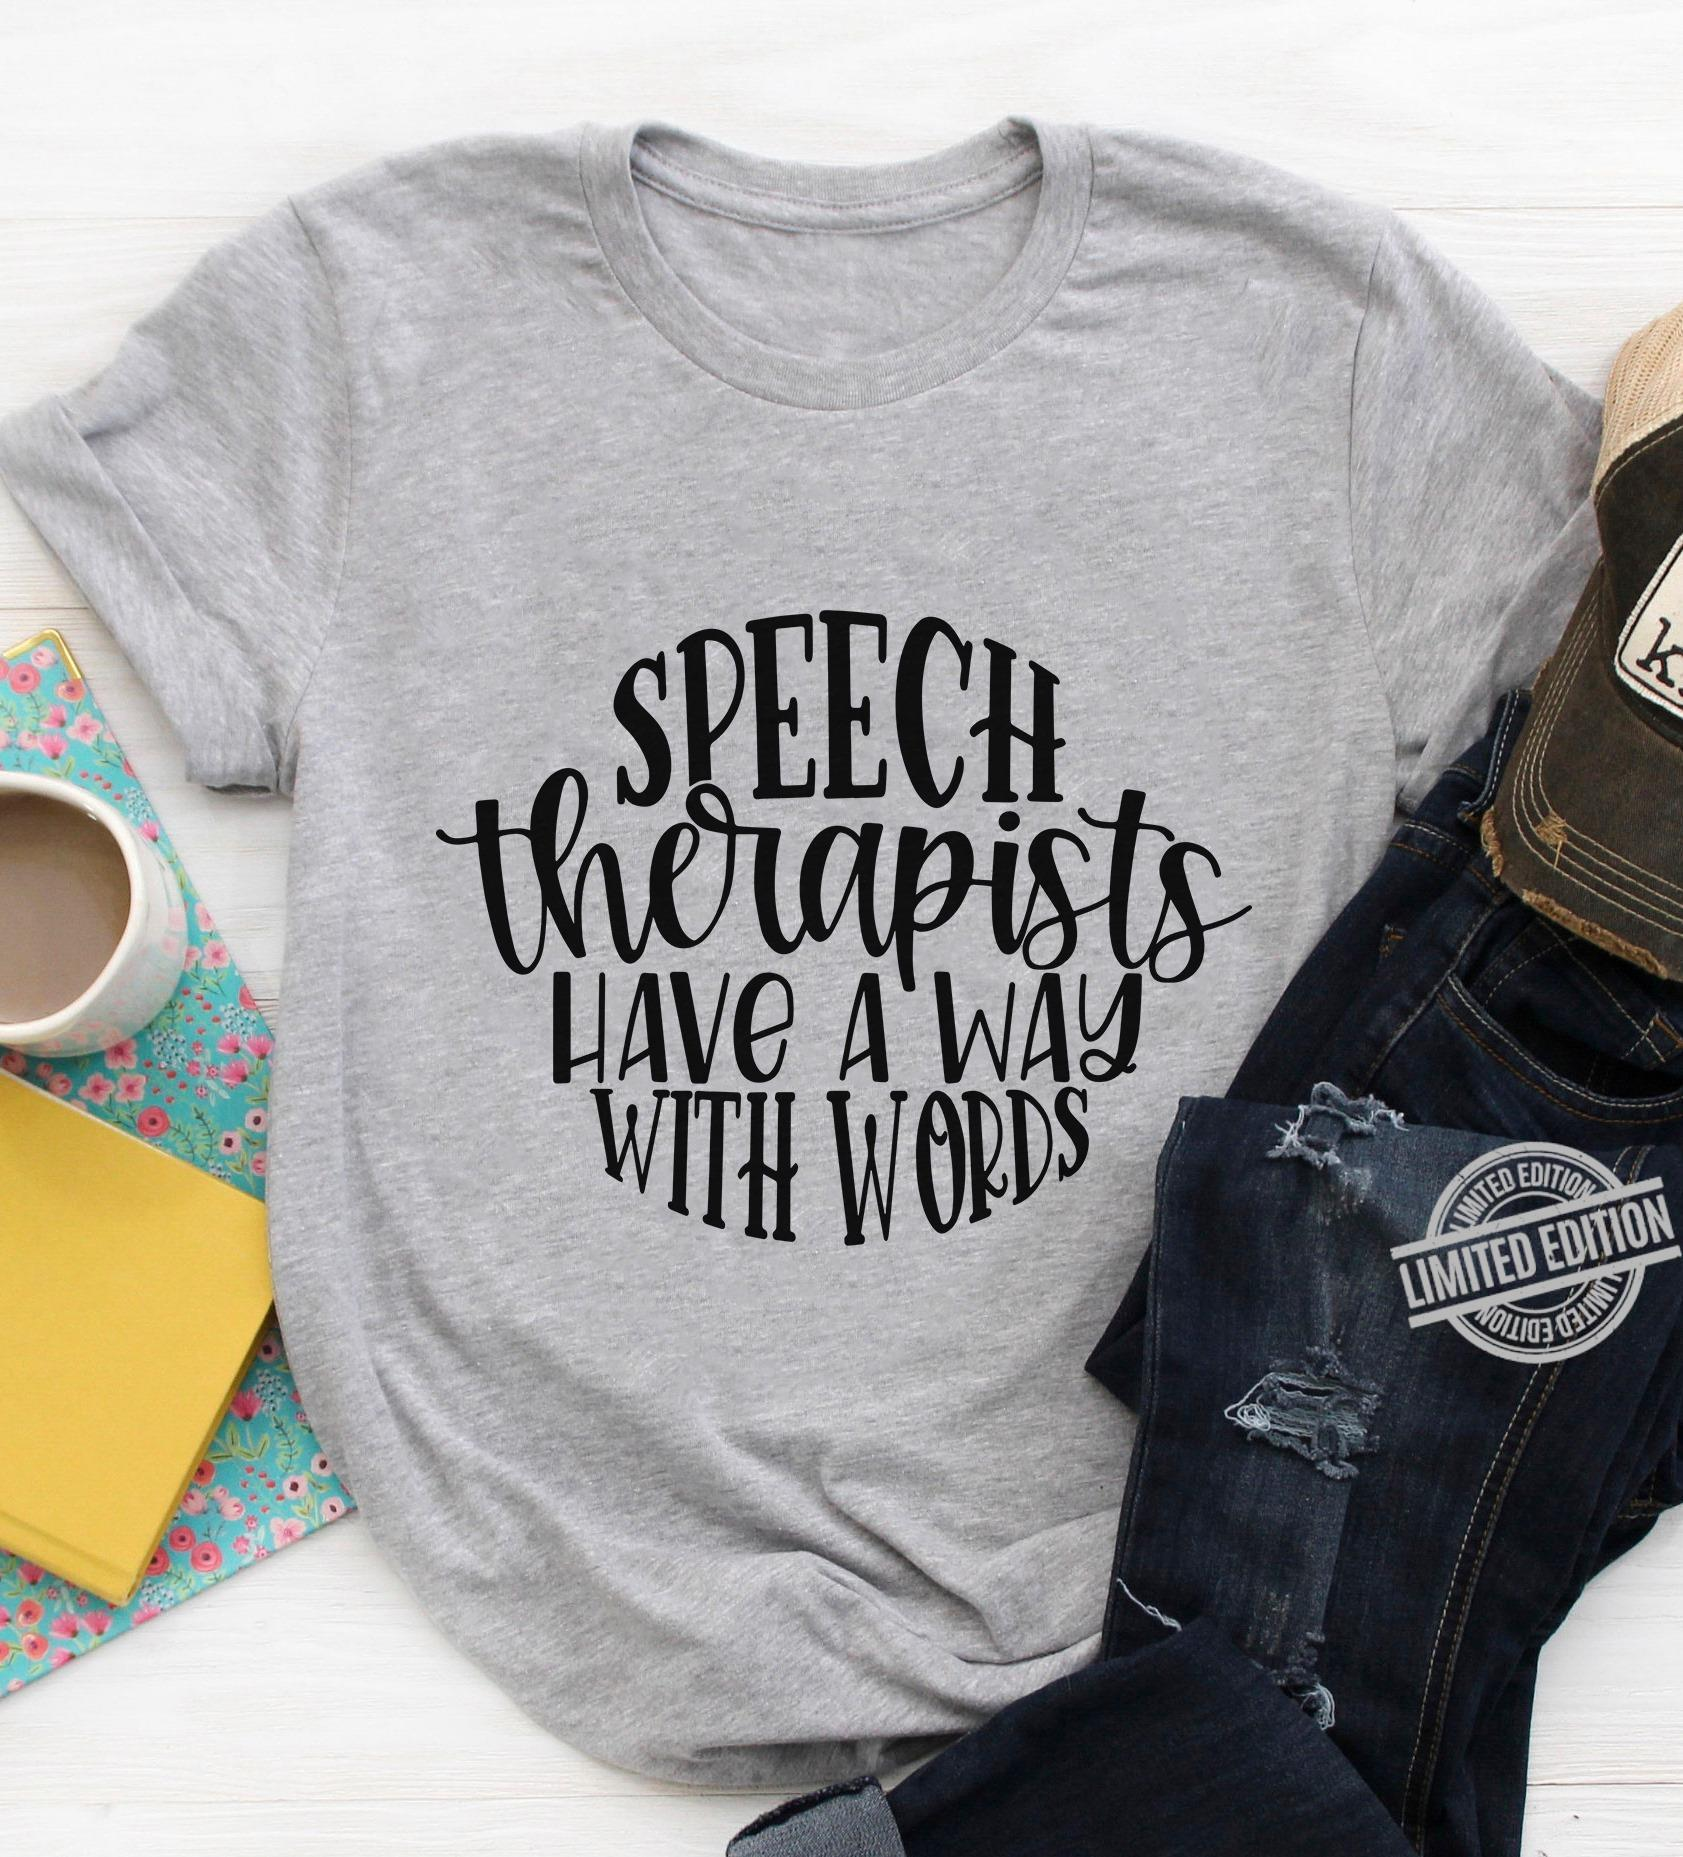 peech Therapists Have A Way With Words Shirt